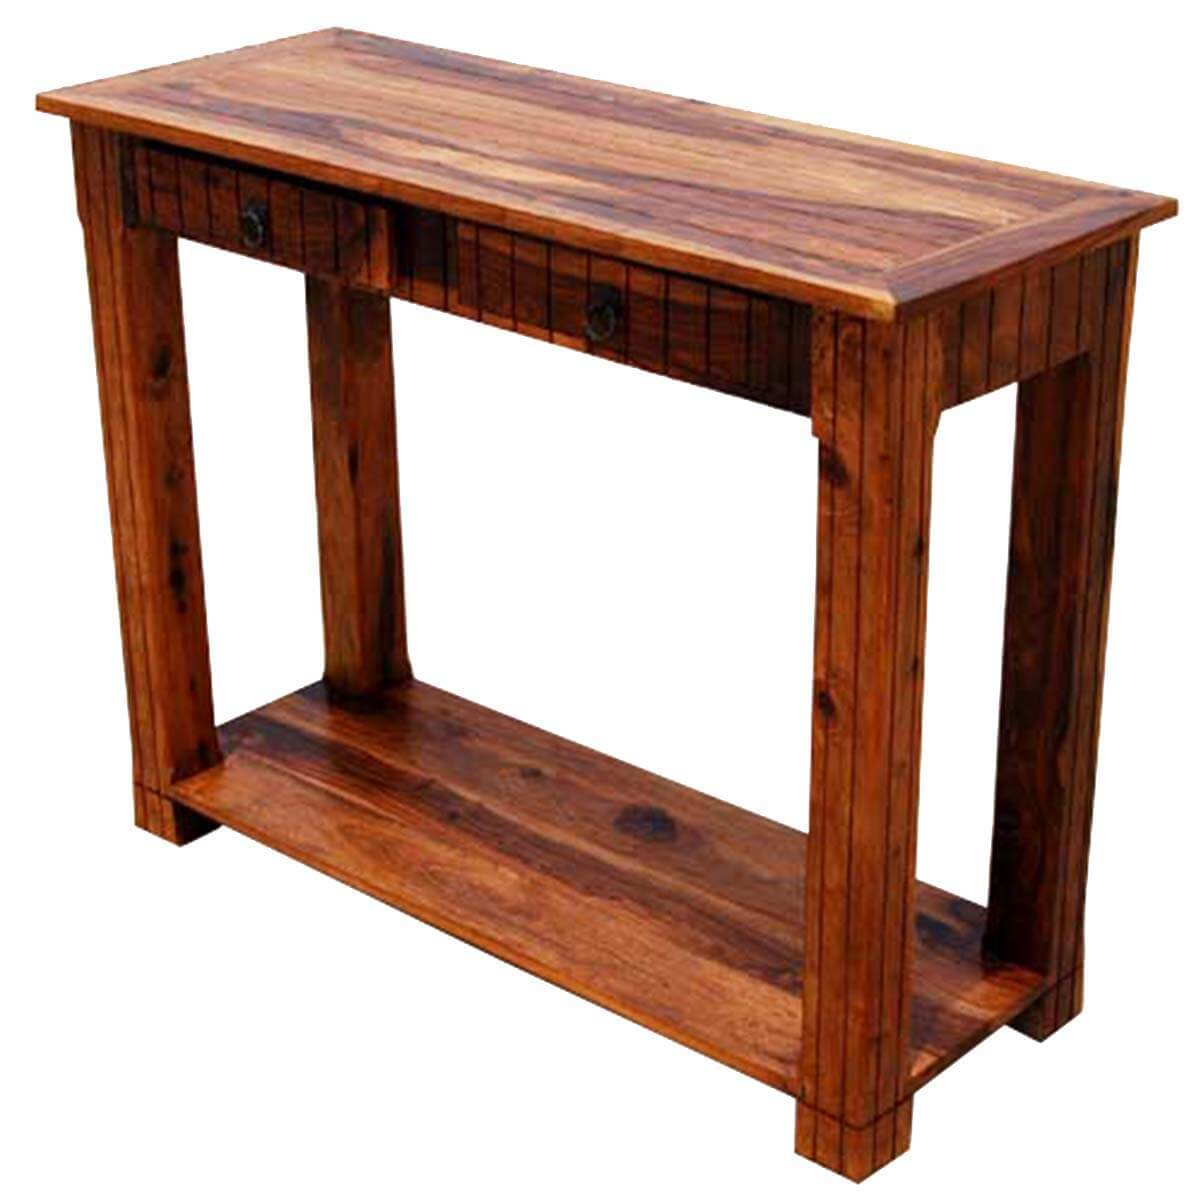 Marvelous photograph of Solid Wood 2 Storage Drawer Sofa Entryway Console Table with #B48317 color and 1200x1200 pixels